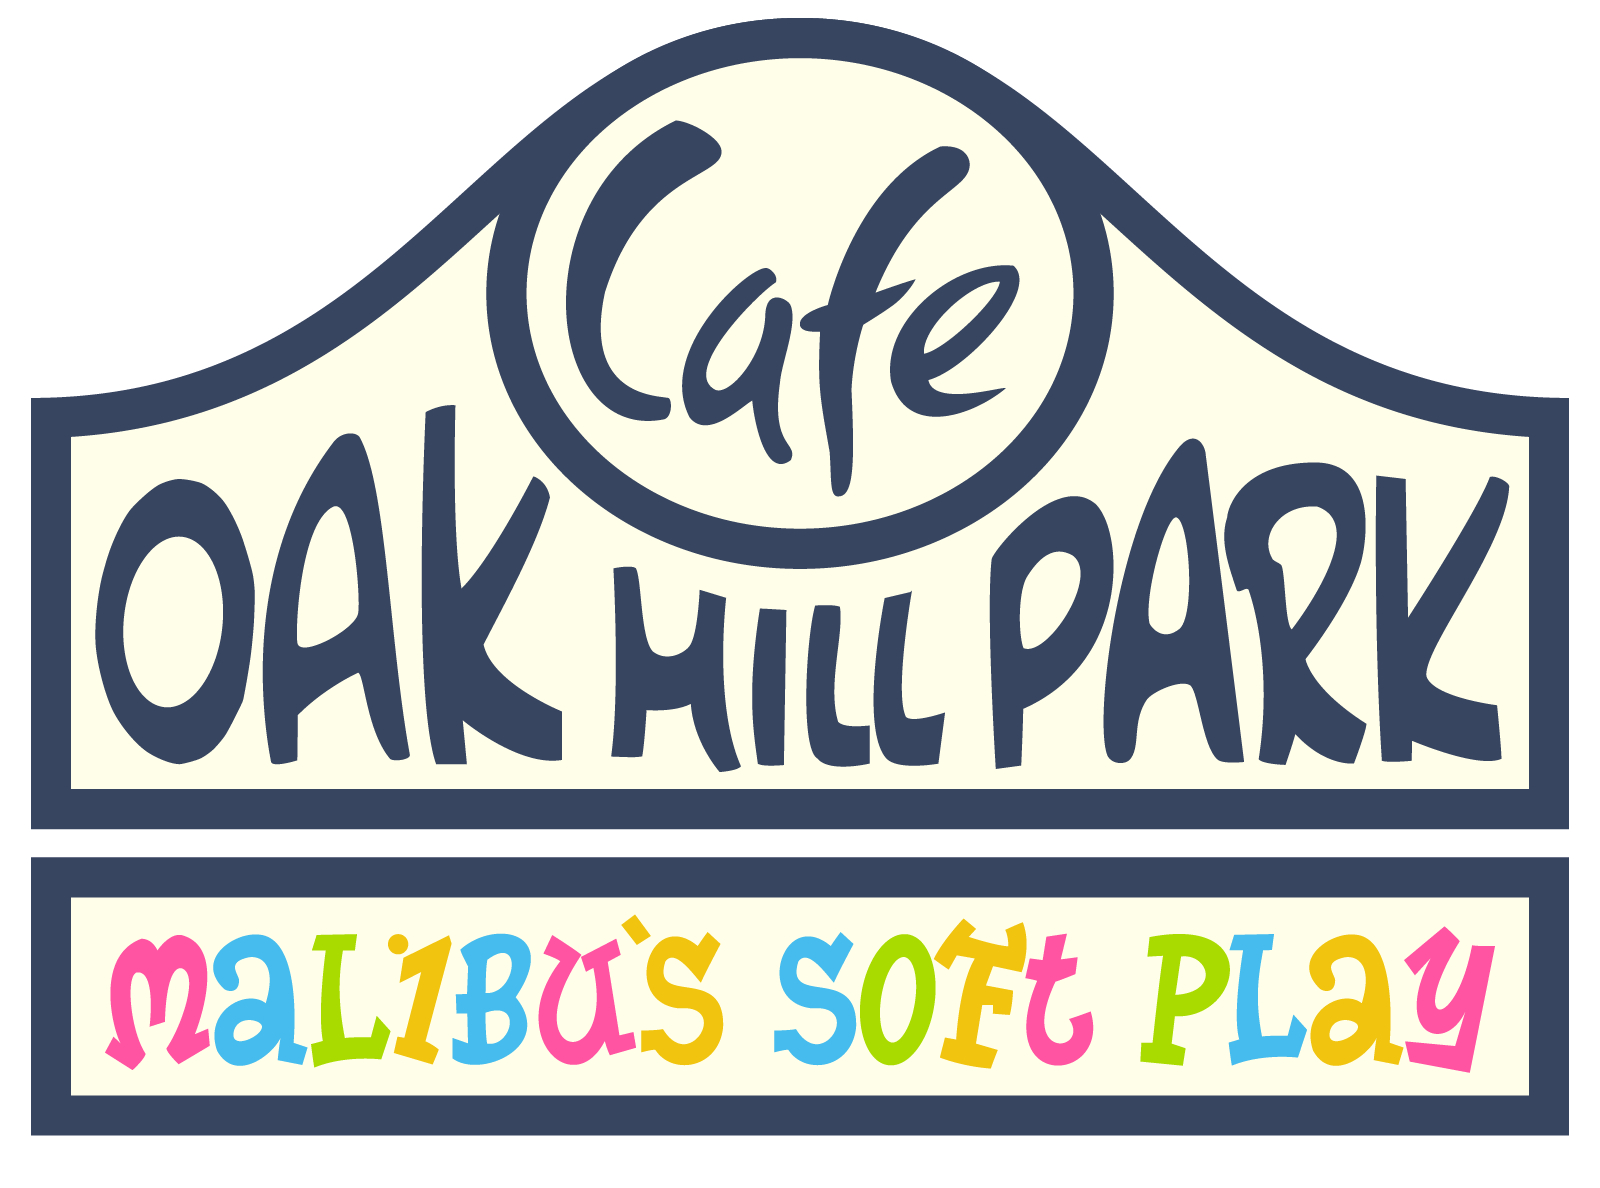 Oak Hill Park Cafe